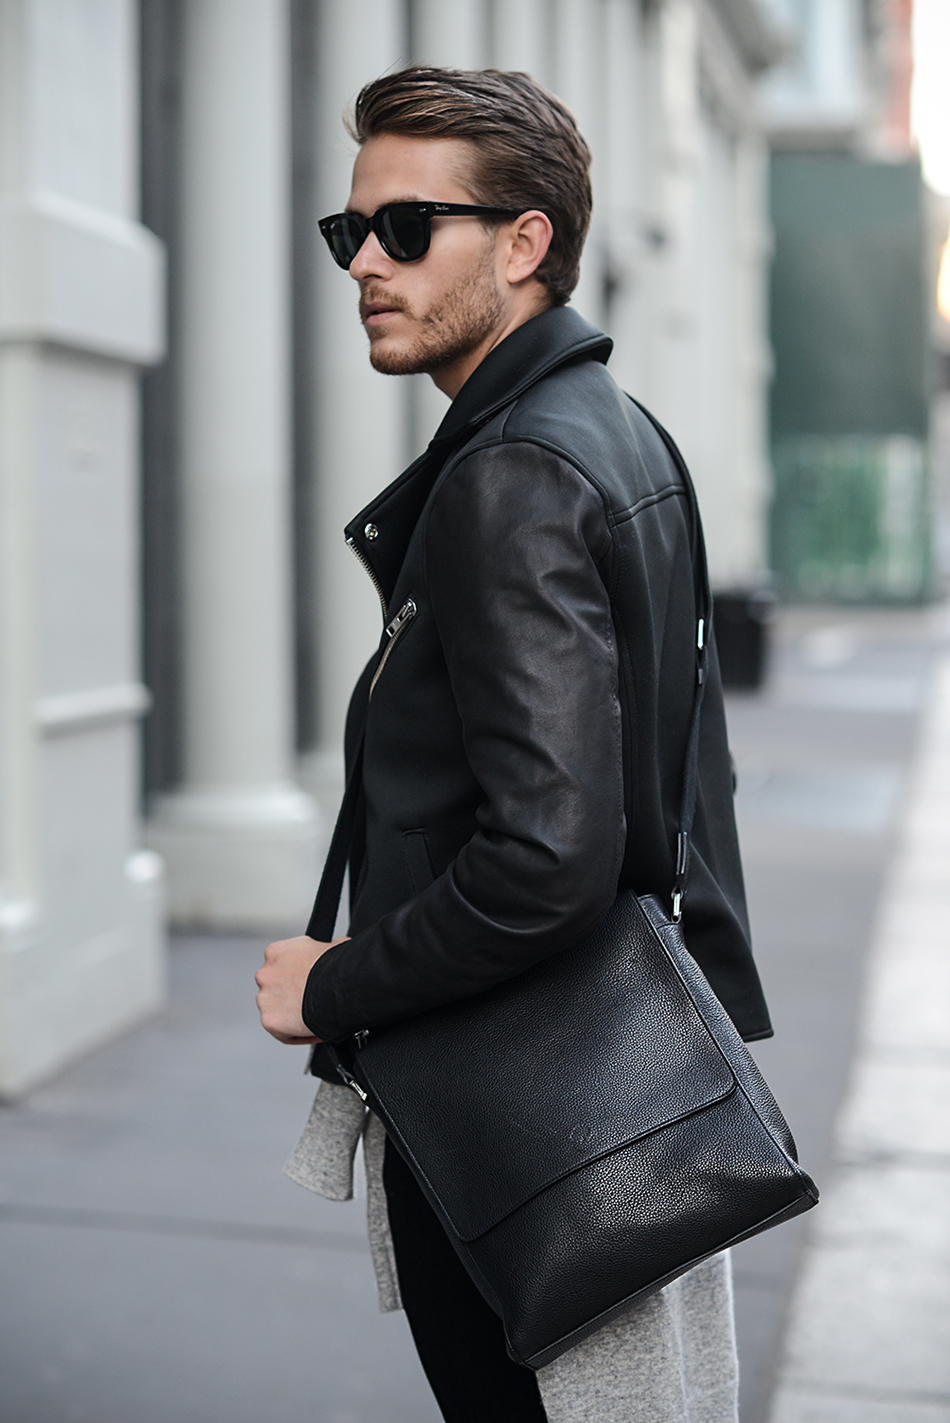 The Man-bag! – We have shifted to www.debasrideb.com